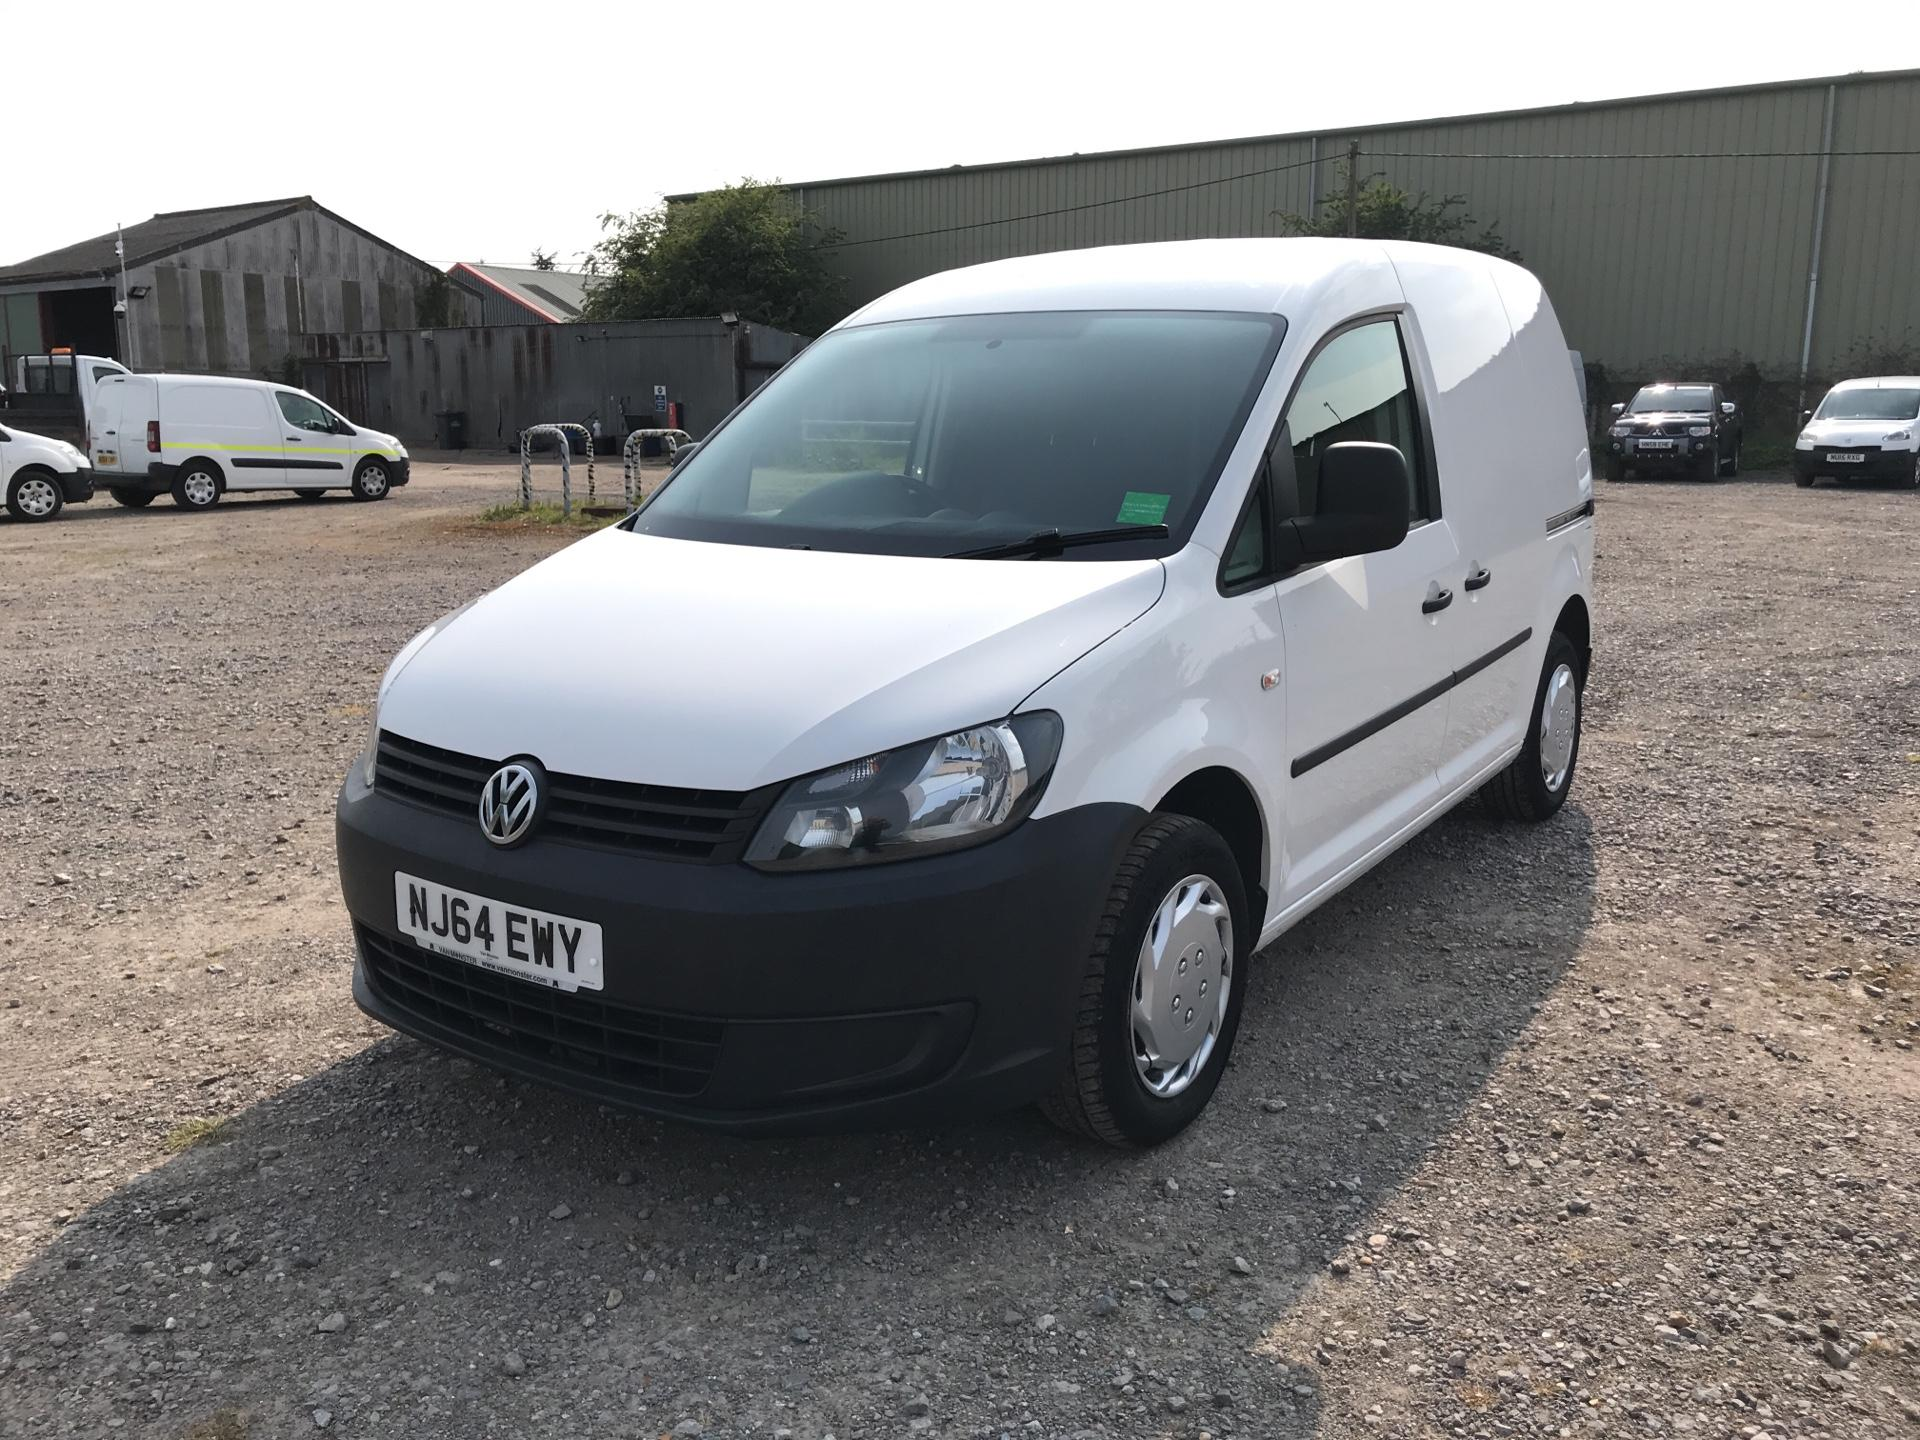 2014 Volkswagen Caddy 1.6 75PS STARTLINE EURO 5 (NJ64EWY) Image 7